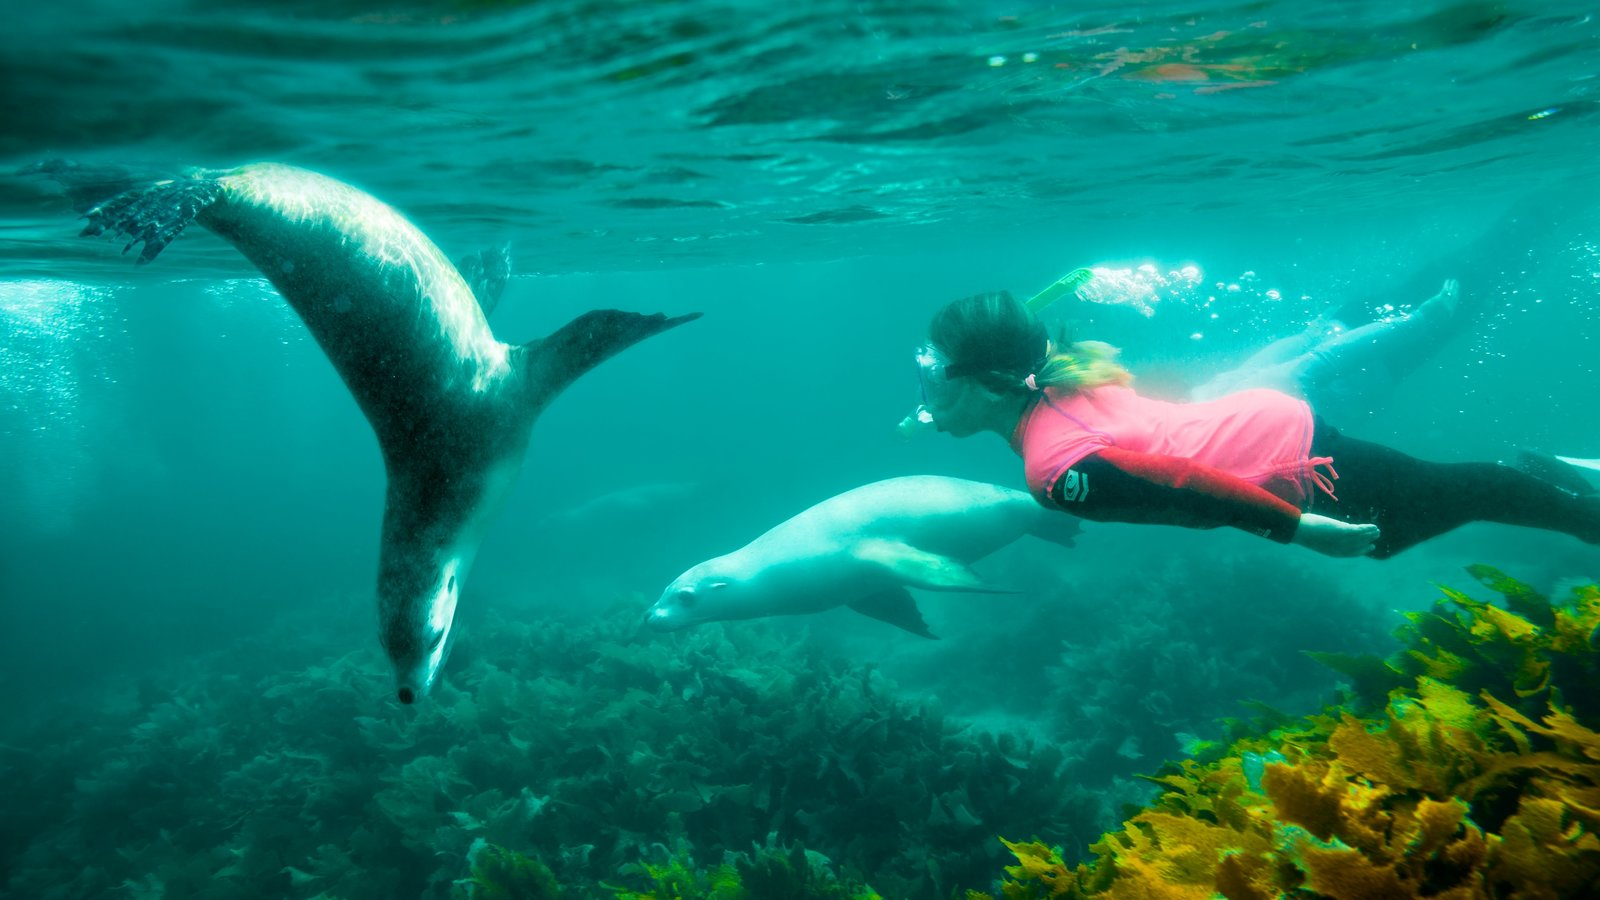 Eyre Peninsula showing snorkeling and marine life as well as an individual femail